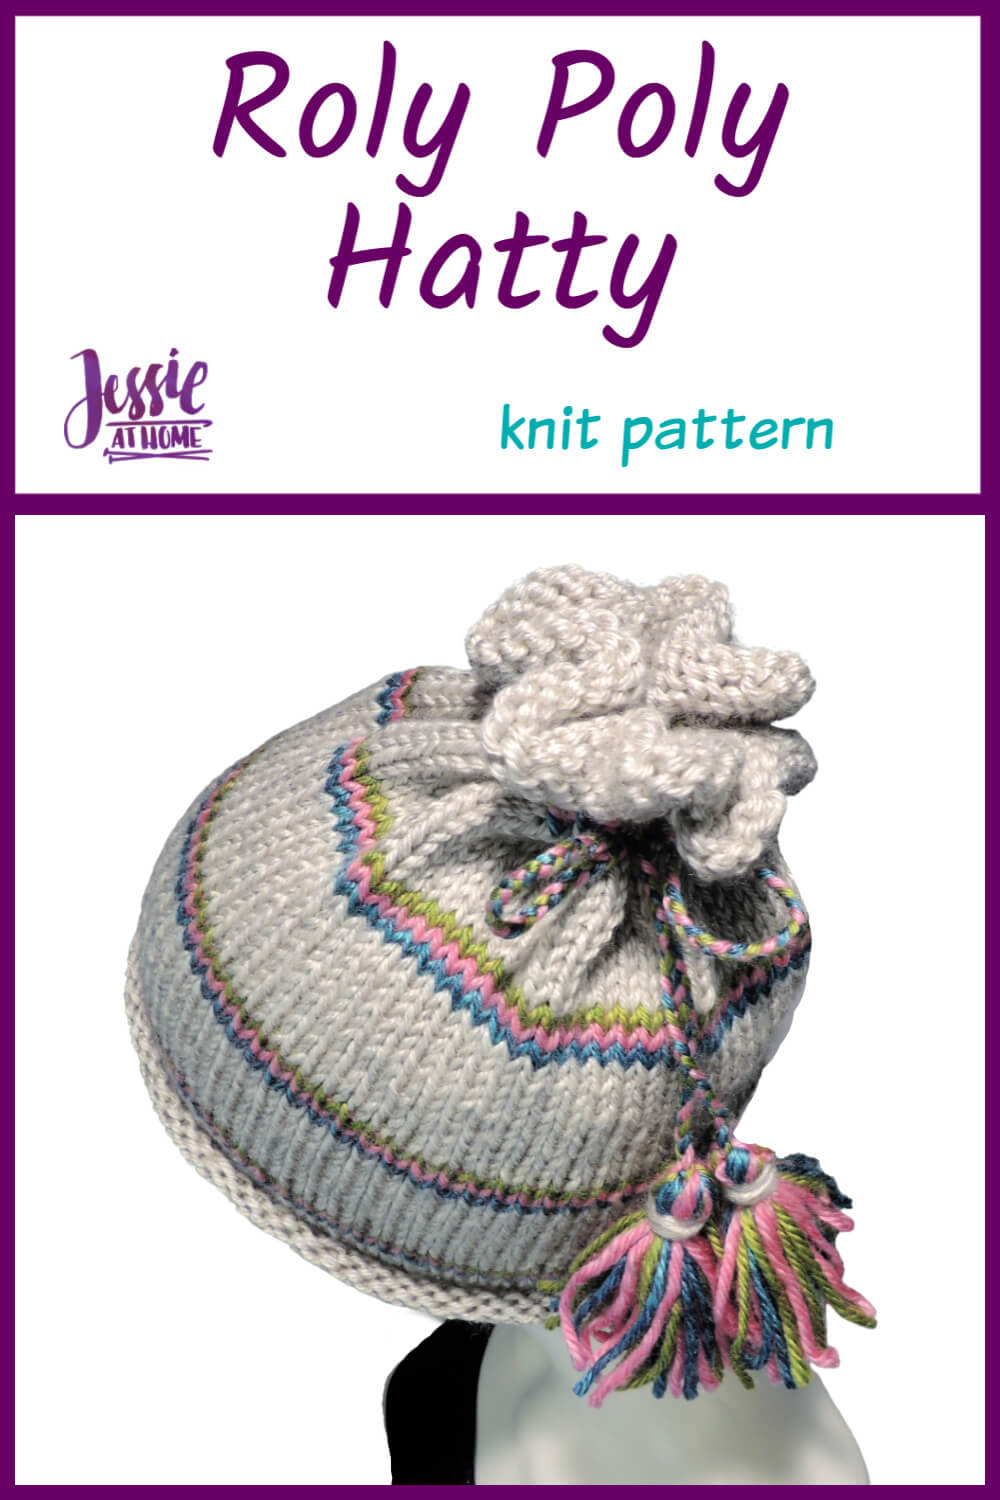 Rolled Brim Knit Hat - Roly Poly Hatty